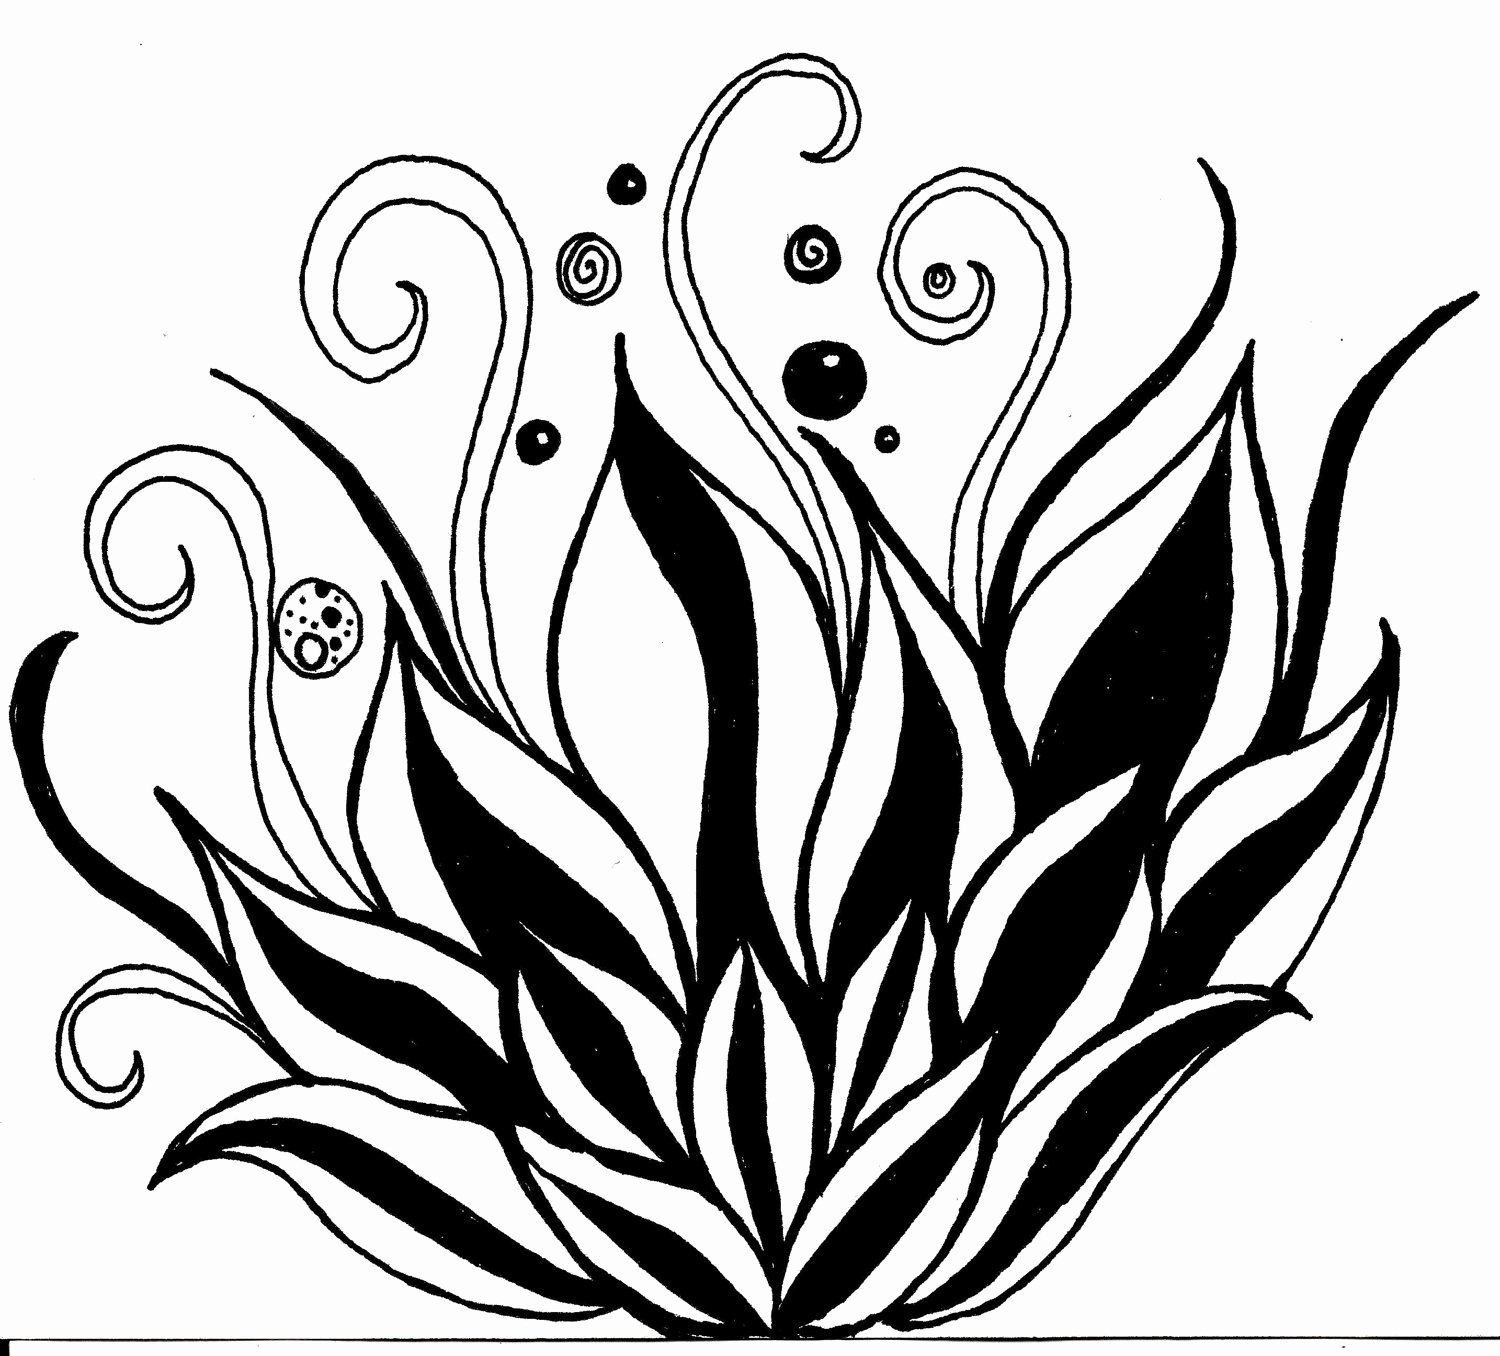 Black and White Flower Drawing Inspirational Free Drawings Flowers In Black and White Download Free Clip Art Free Clip Art On Clipart